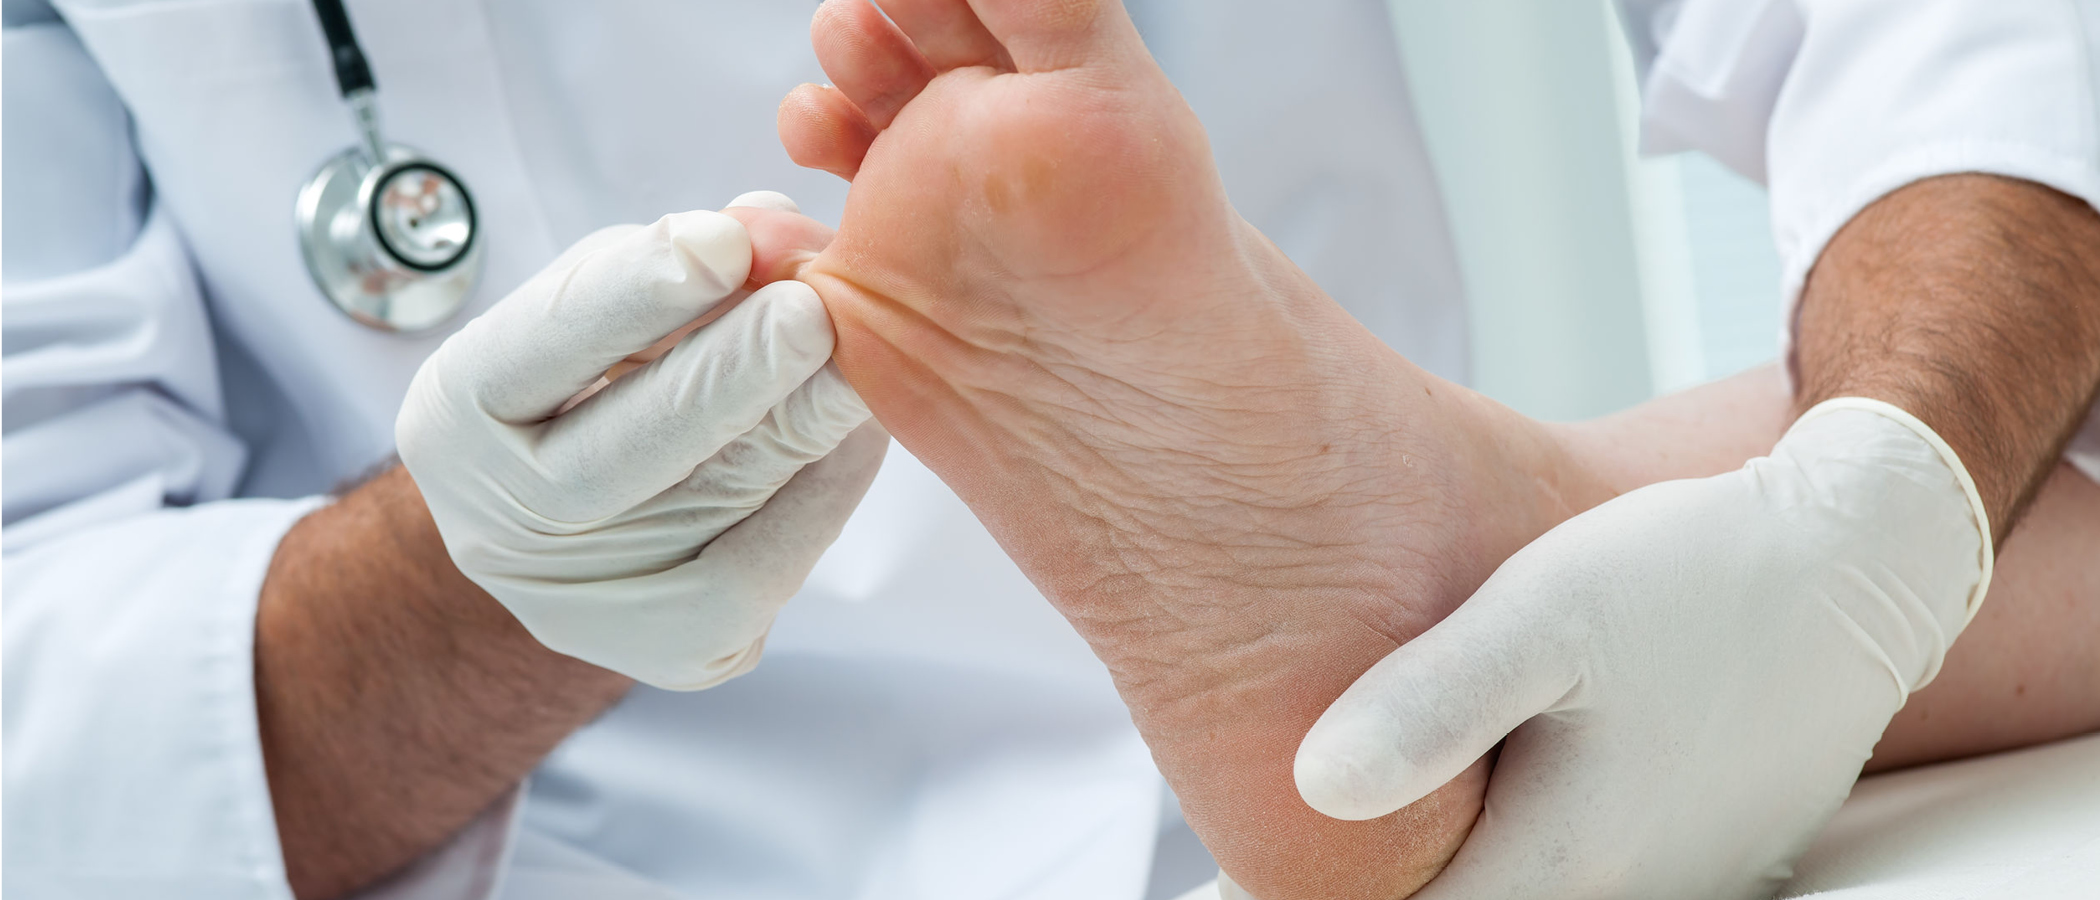 Management of Neuropathy and Related Ulcers